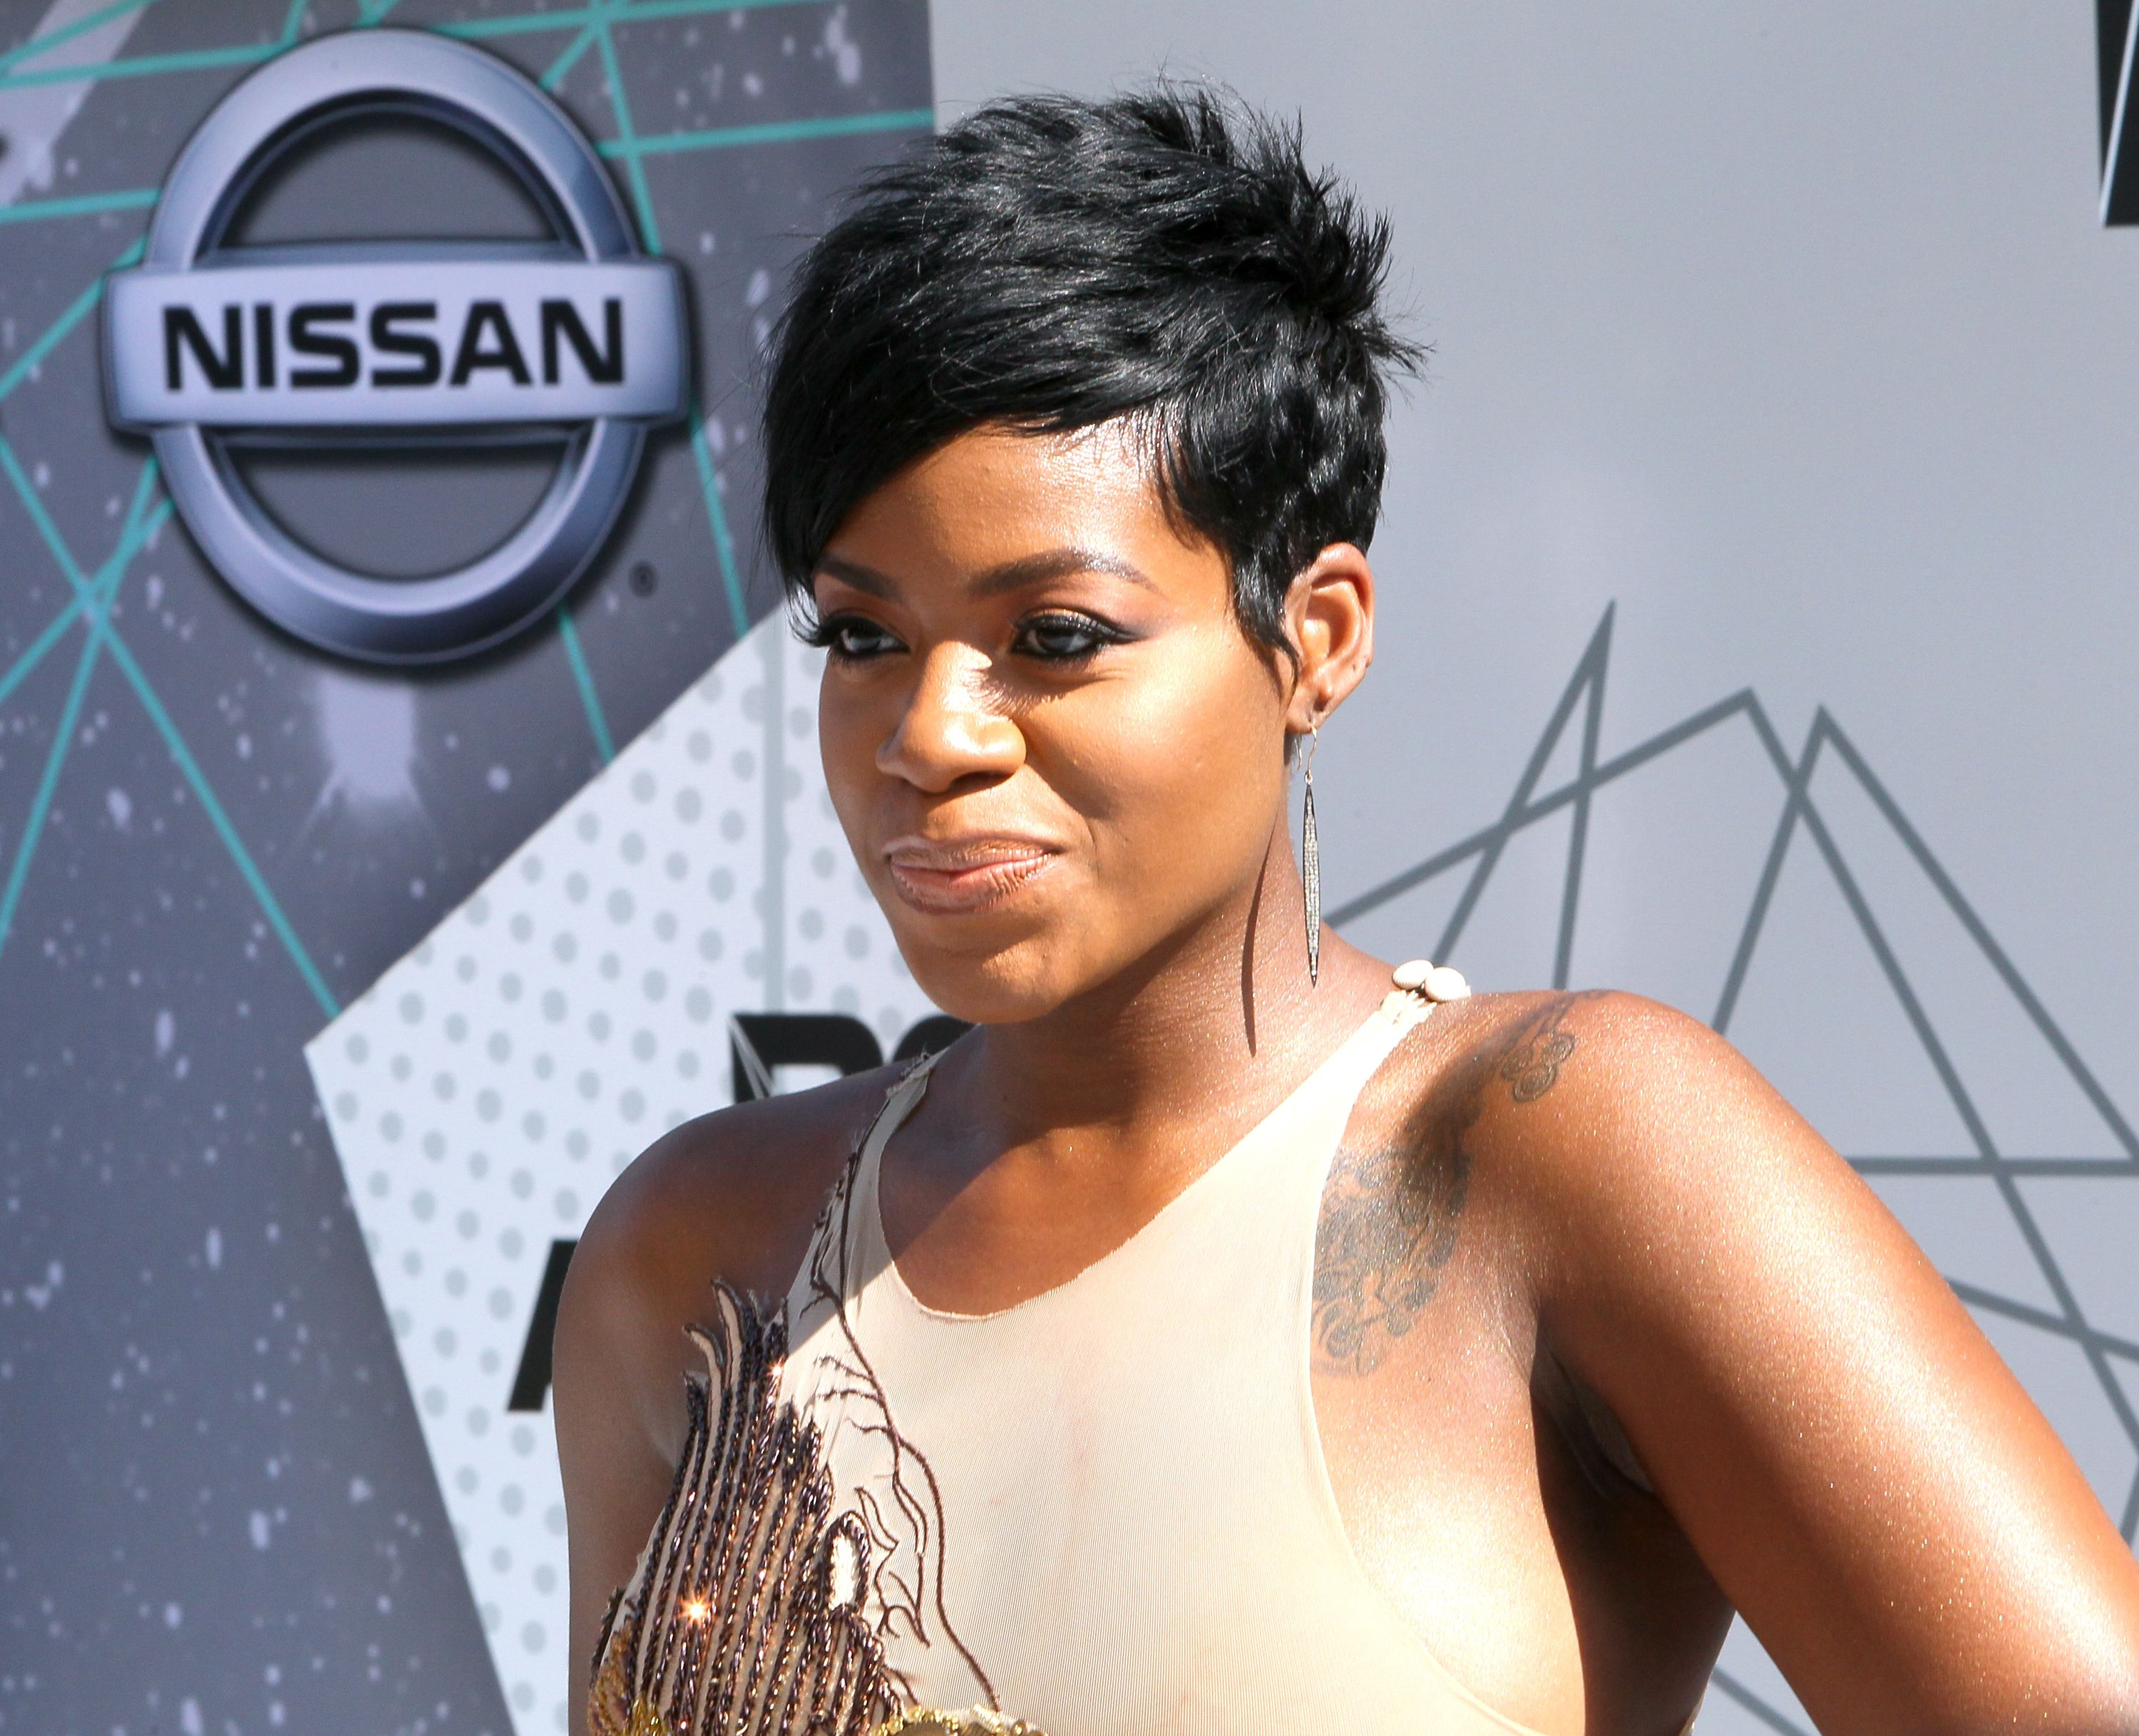 Singer Fantasia Barrino attends the 2016 BET Awards at Microsoft Theater on June 26, 2016 | Source: Getty Images